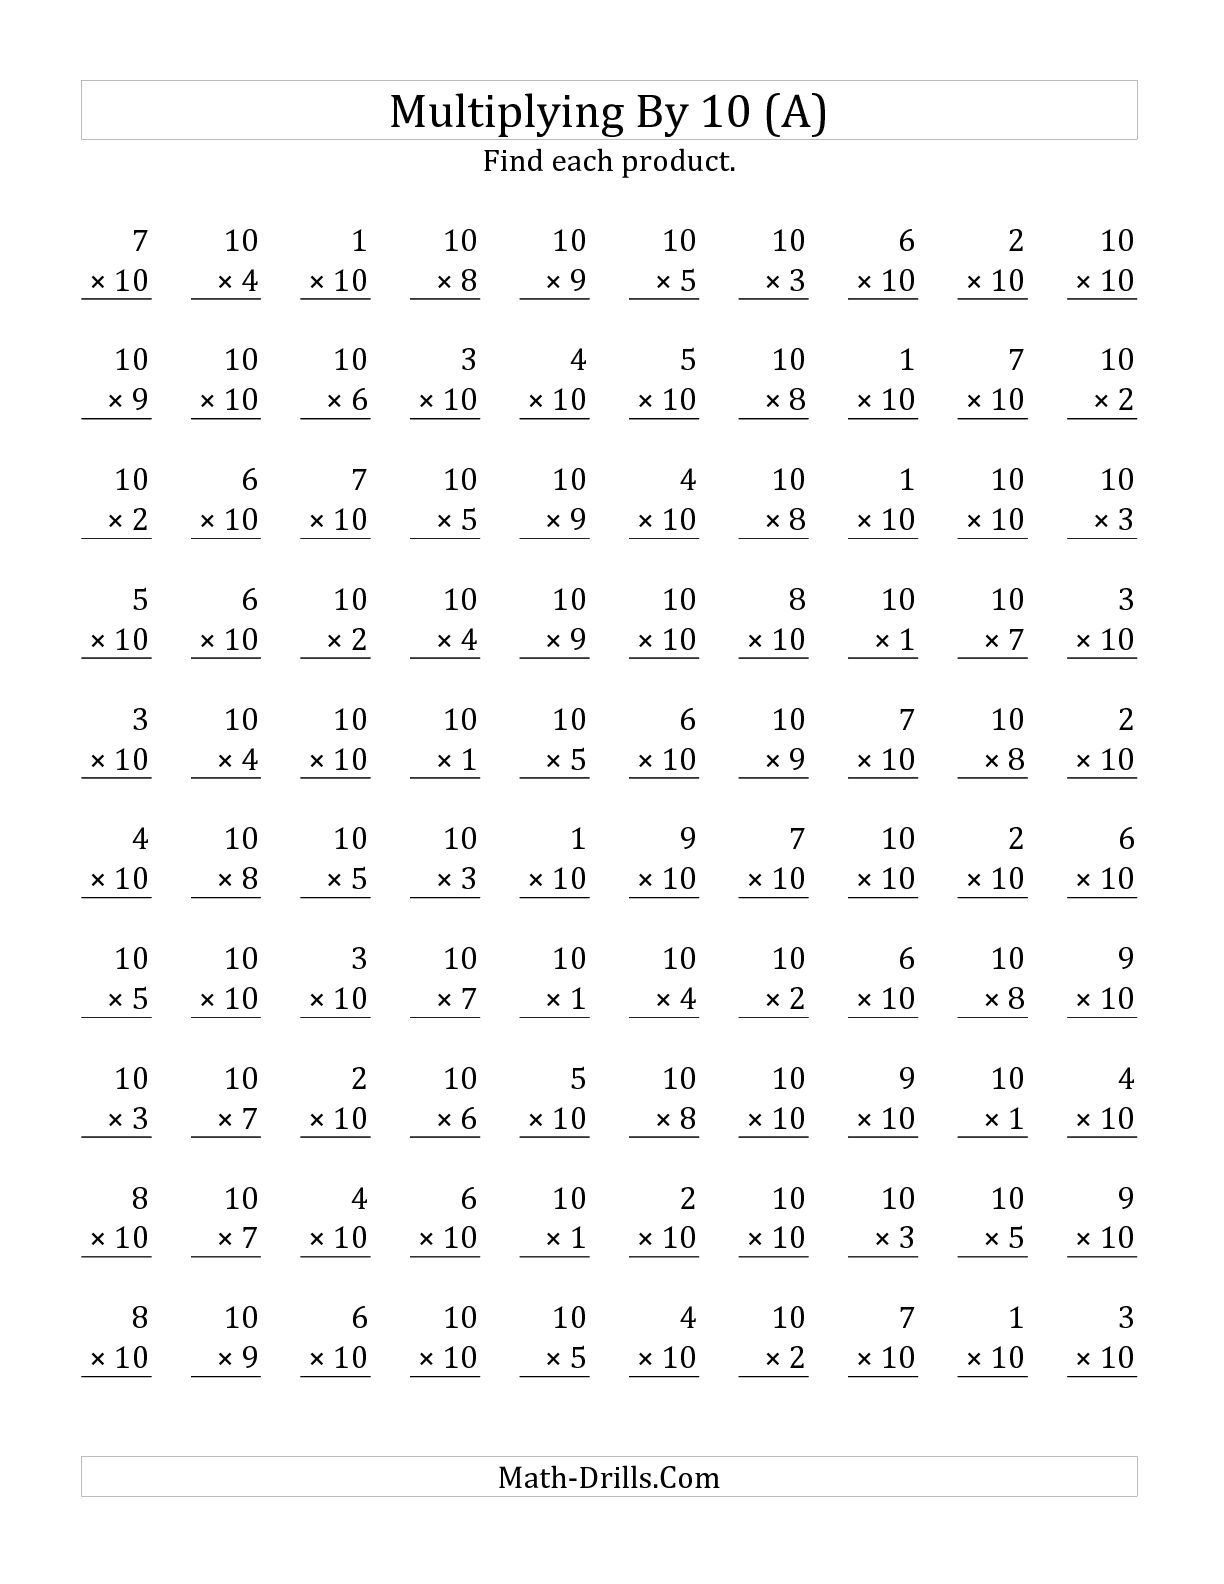 The Multiplying 1 To 10 By 10 A Math Worksheet From The Multiplication Facts Worksheet Page